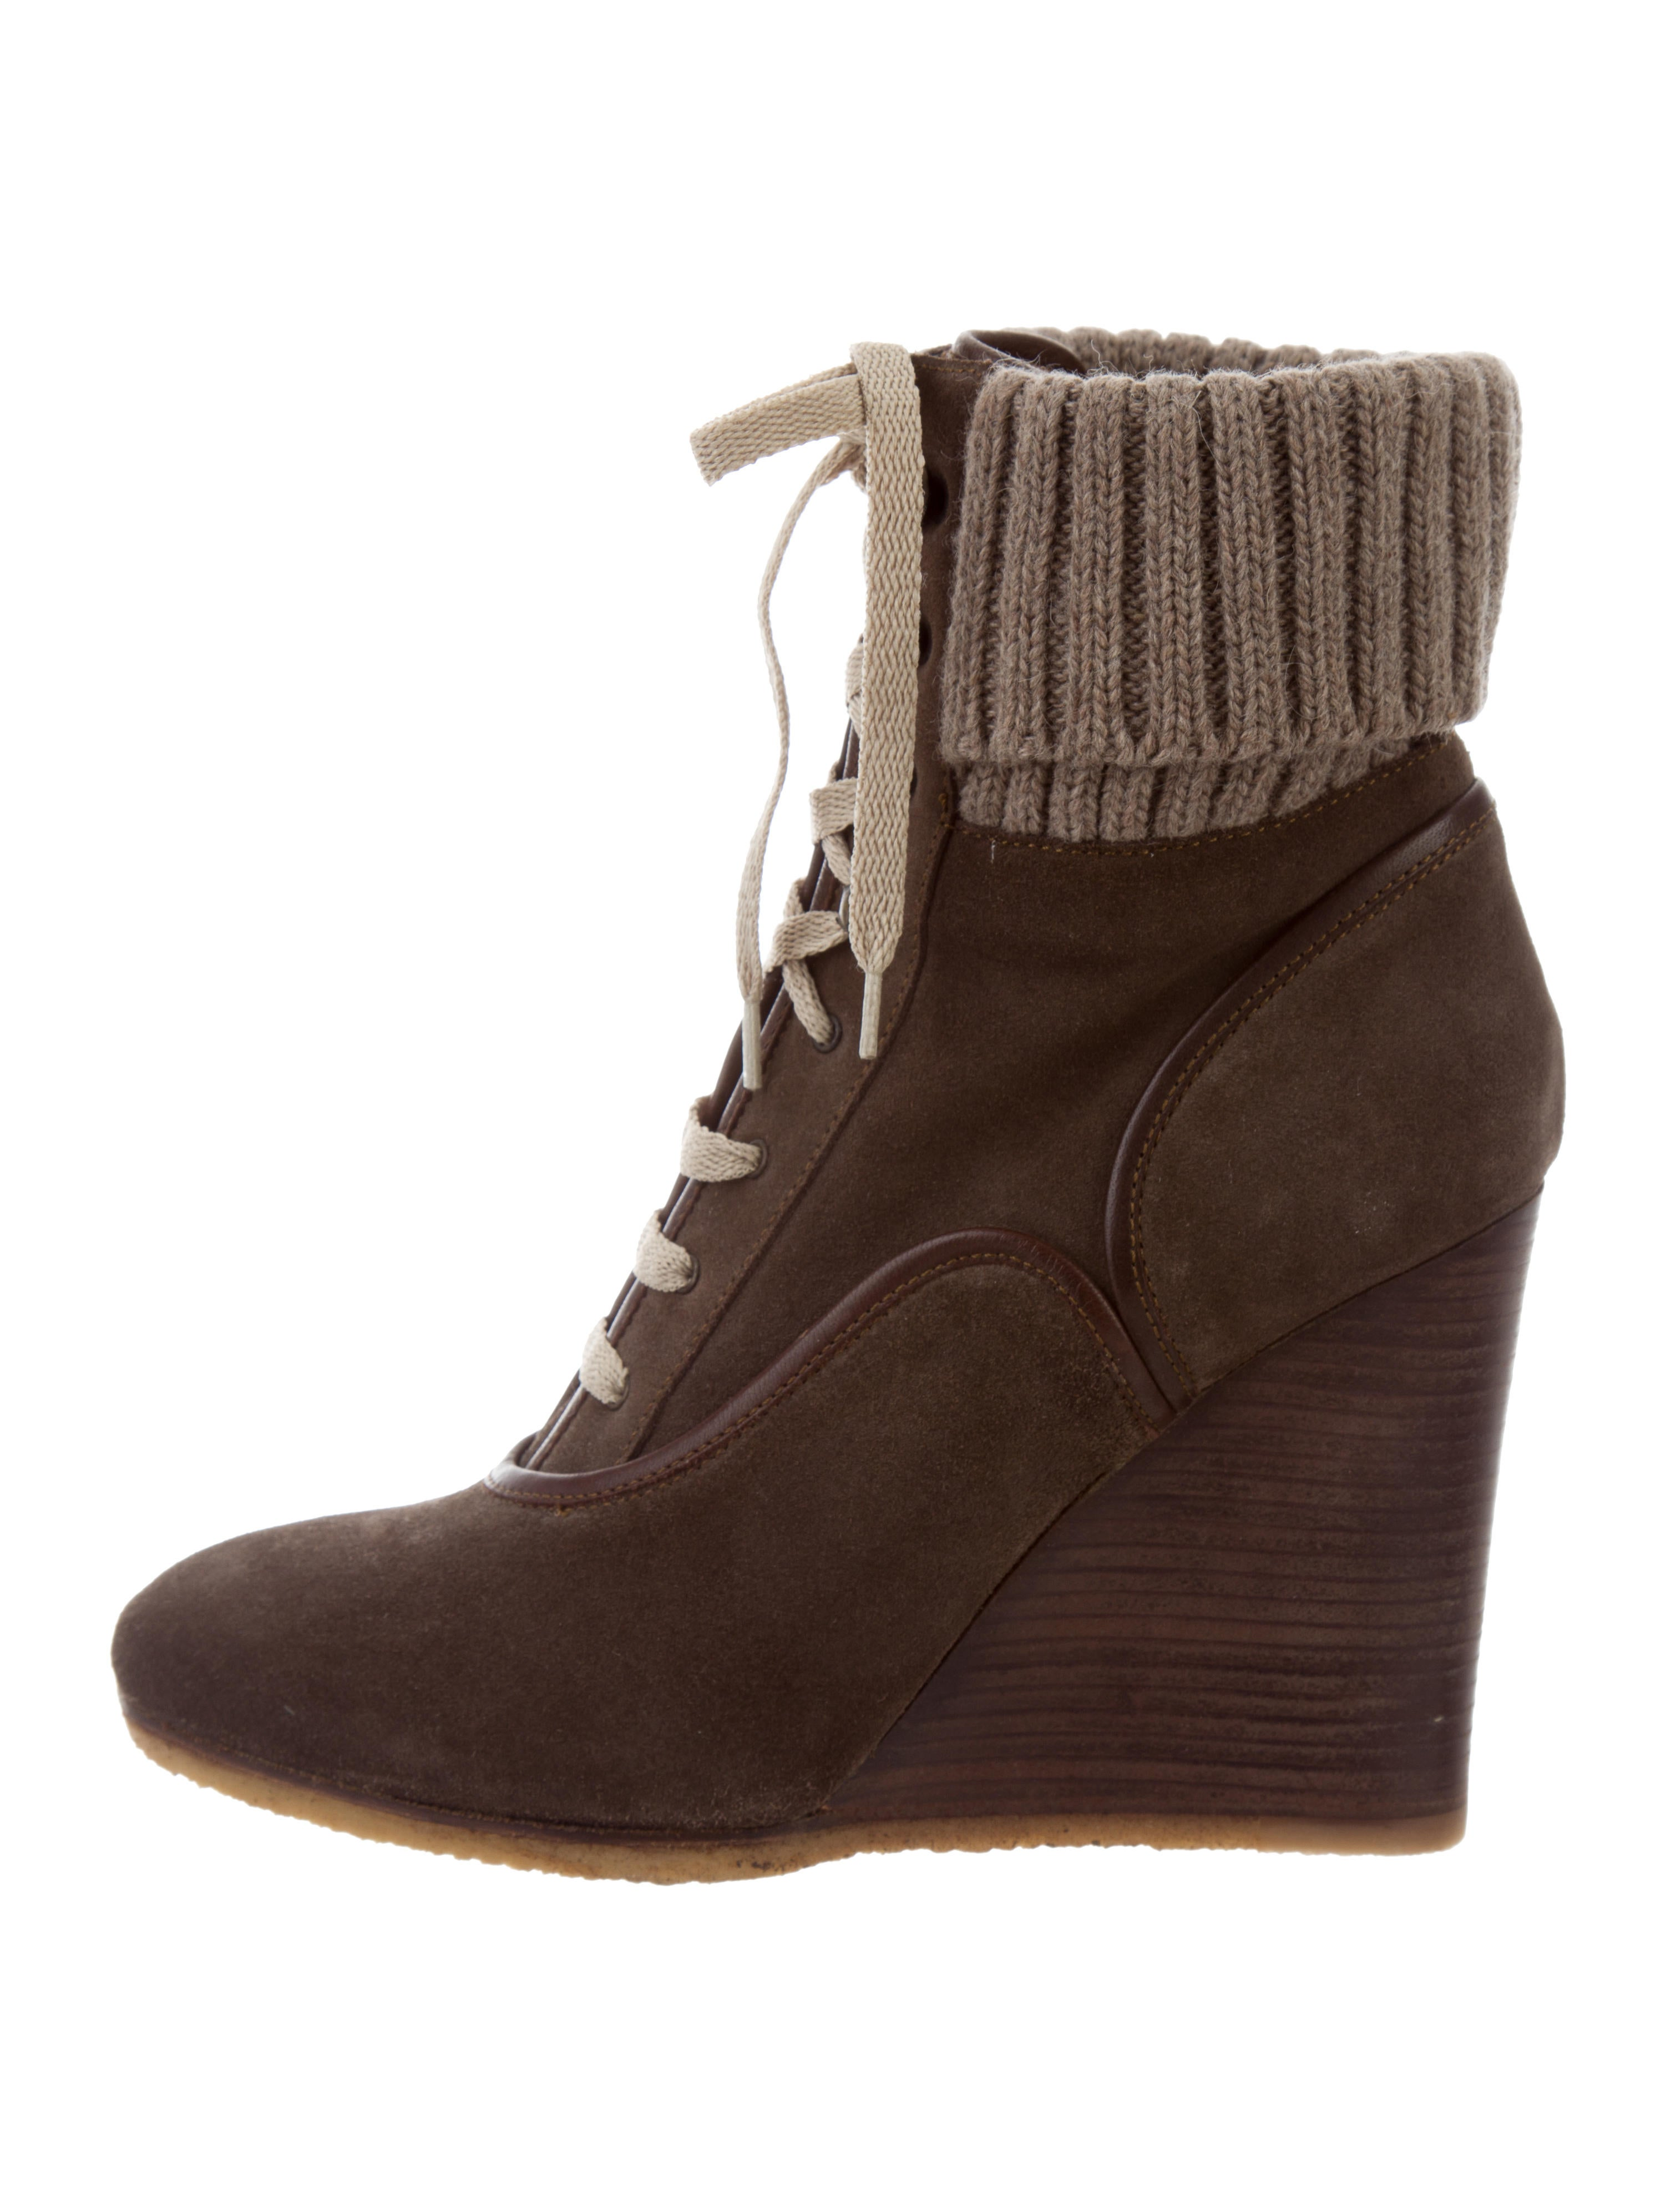 chlo 233 wedge ankle boots shoes chl61891 the realreal